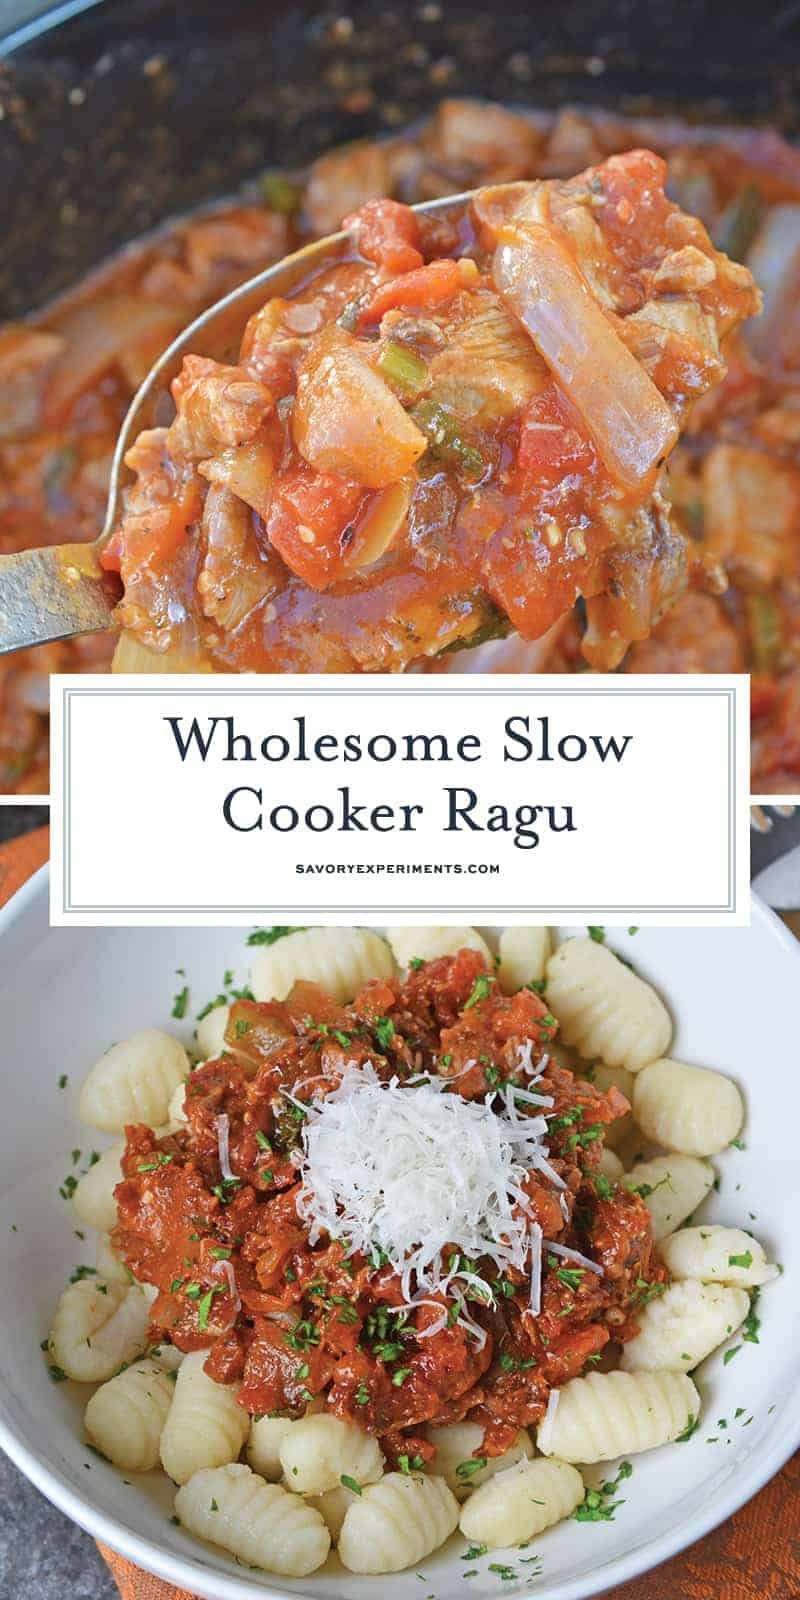 Slow Cooker Ragu uses a blend of 7 vegetables with shredded pork and flavorful spices to make a hearty and delicious ragu sauce. Serve over pasta. Also freezer friendly! #slowcookerragu #slowcookerrecipes www.savoryexperiments.com